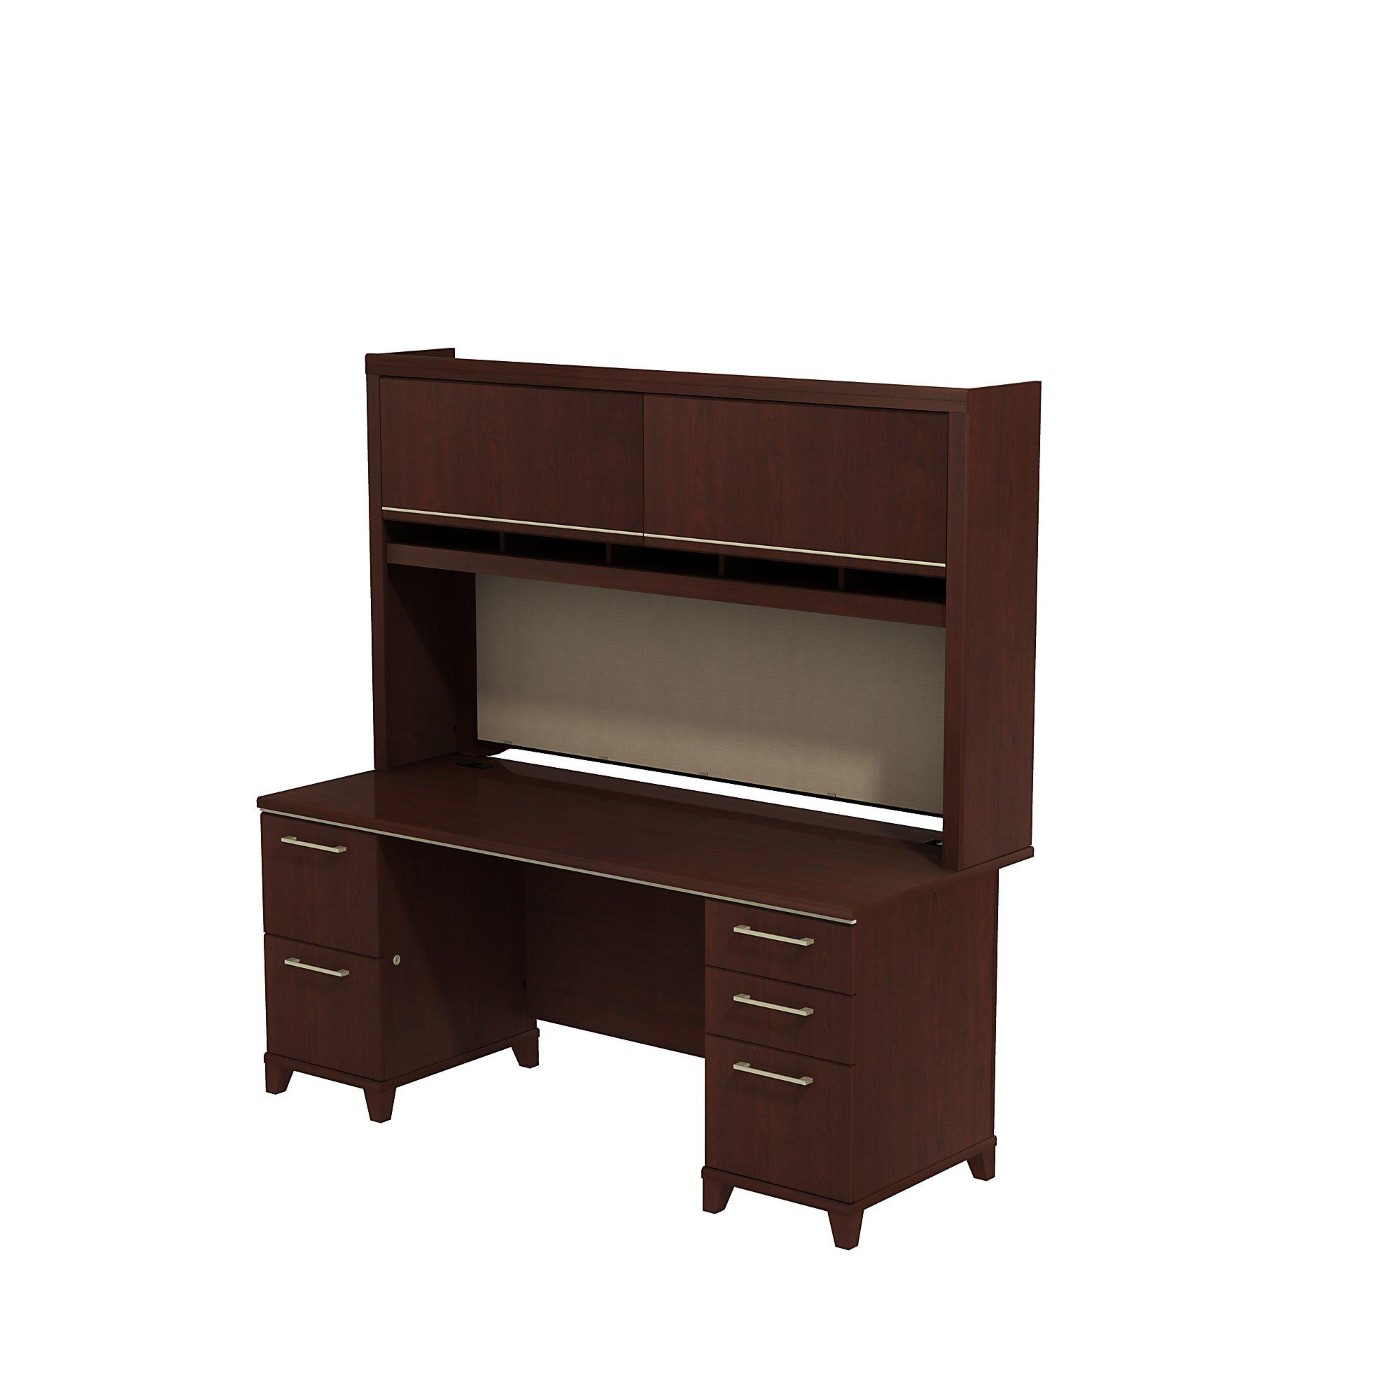 BUSH BUSINESS FURNITURE ENTERPRISE 72W X 30D OFFICE DESK WITH HUTCH AND 2 PEDESTALS #EH-ENT006CS. FREE SHIPPING: